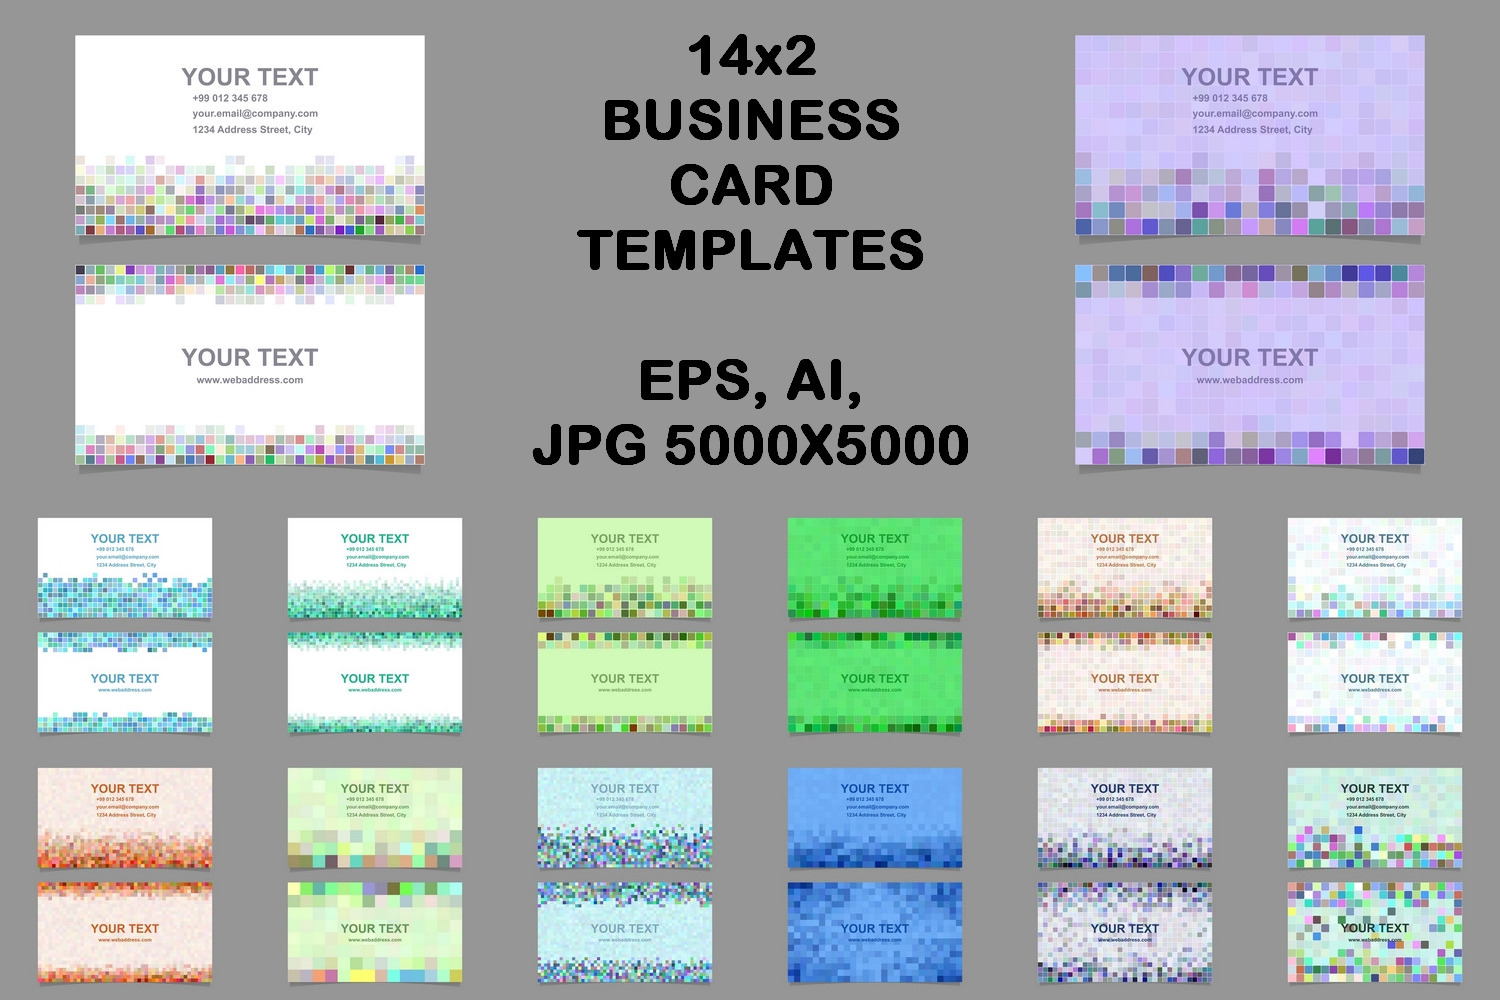 14x2 pixel mosaic business card templates eps ai jpg 5000x5000